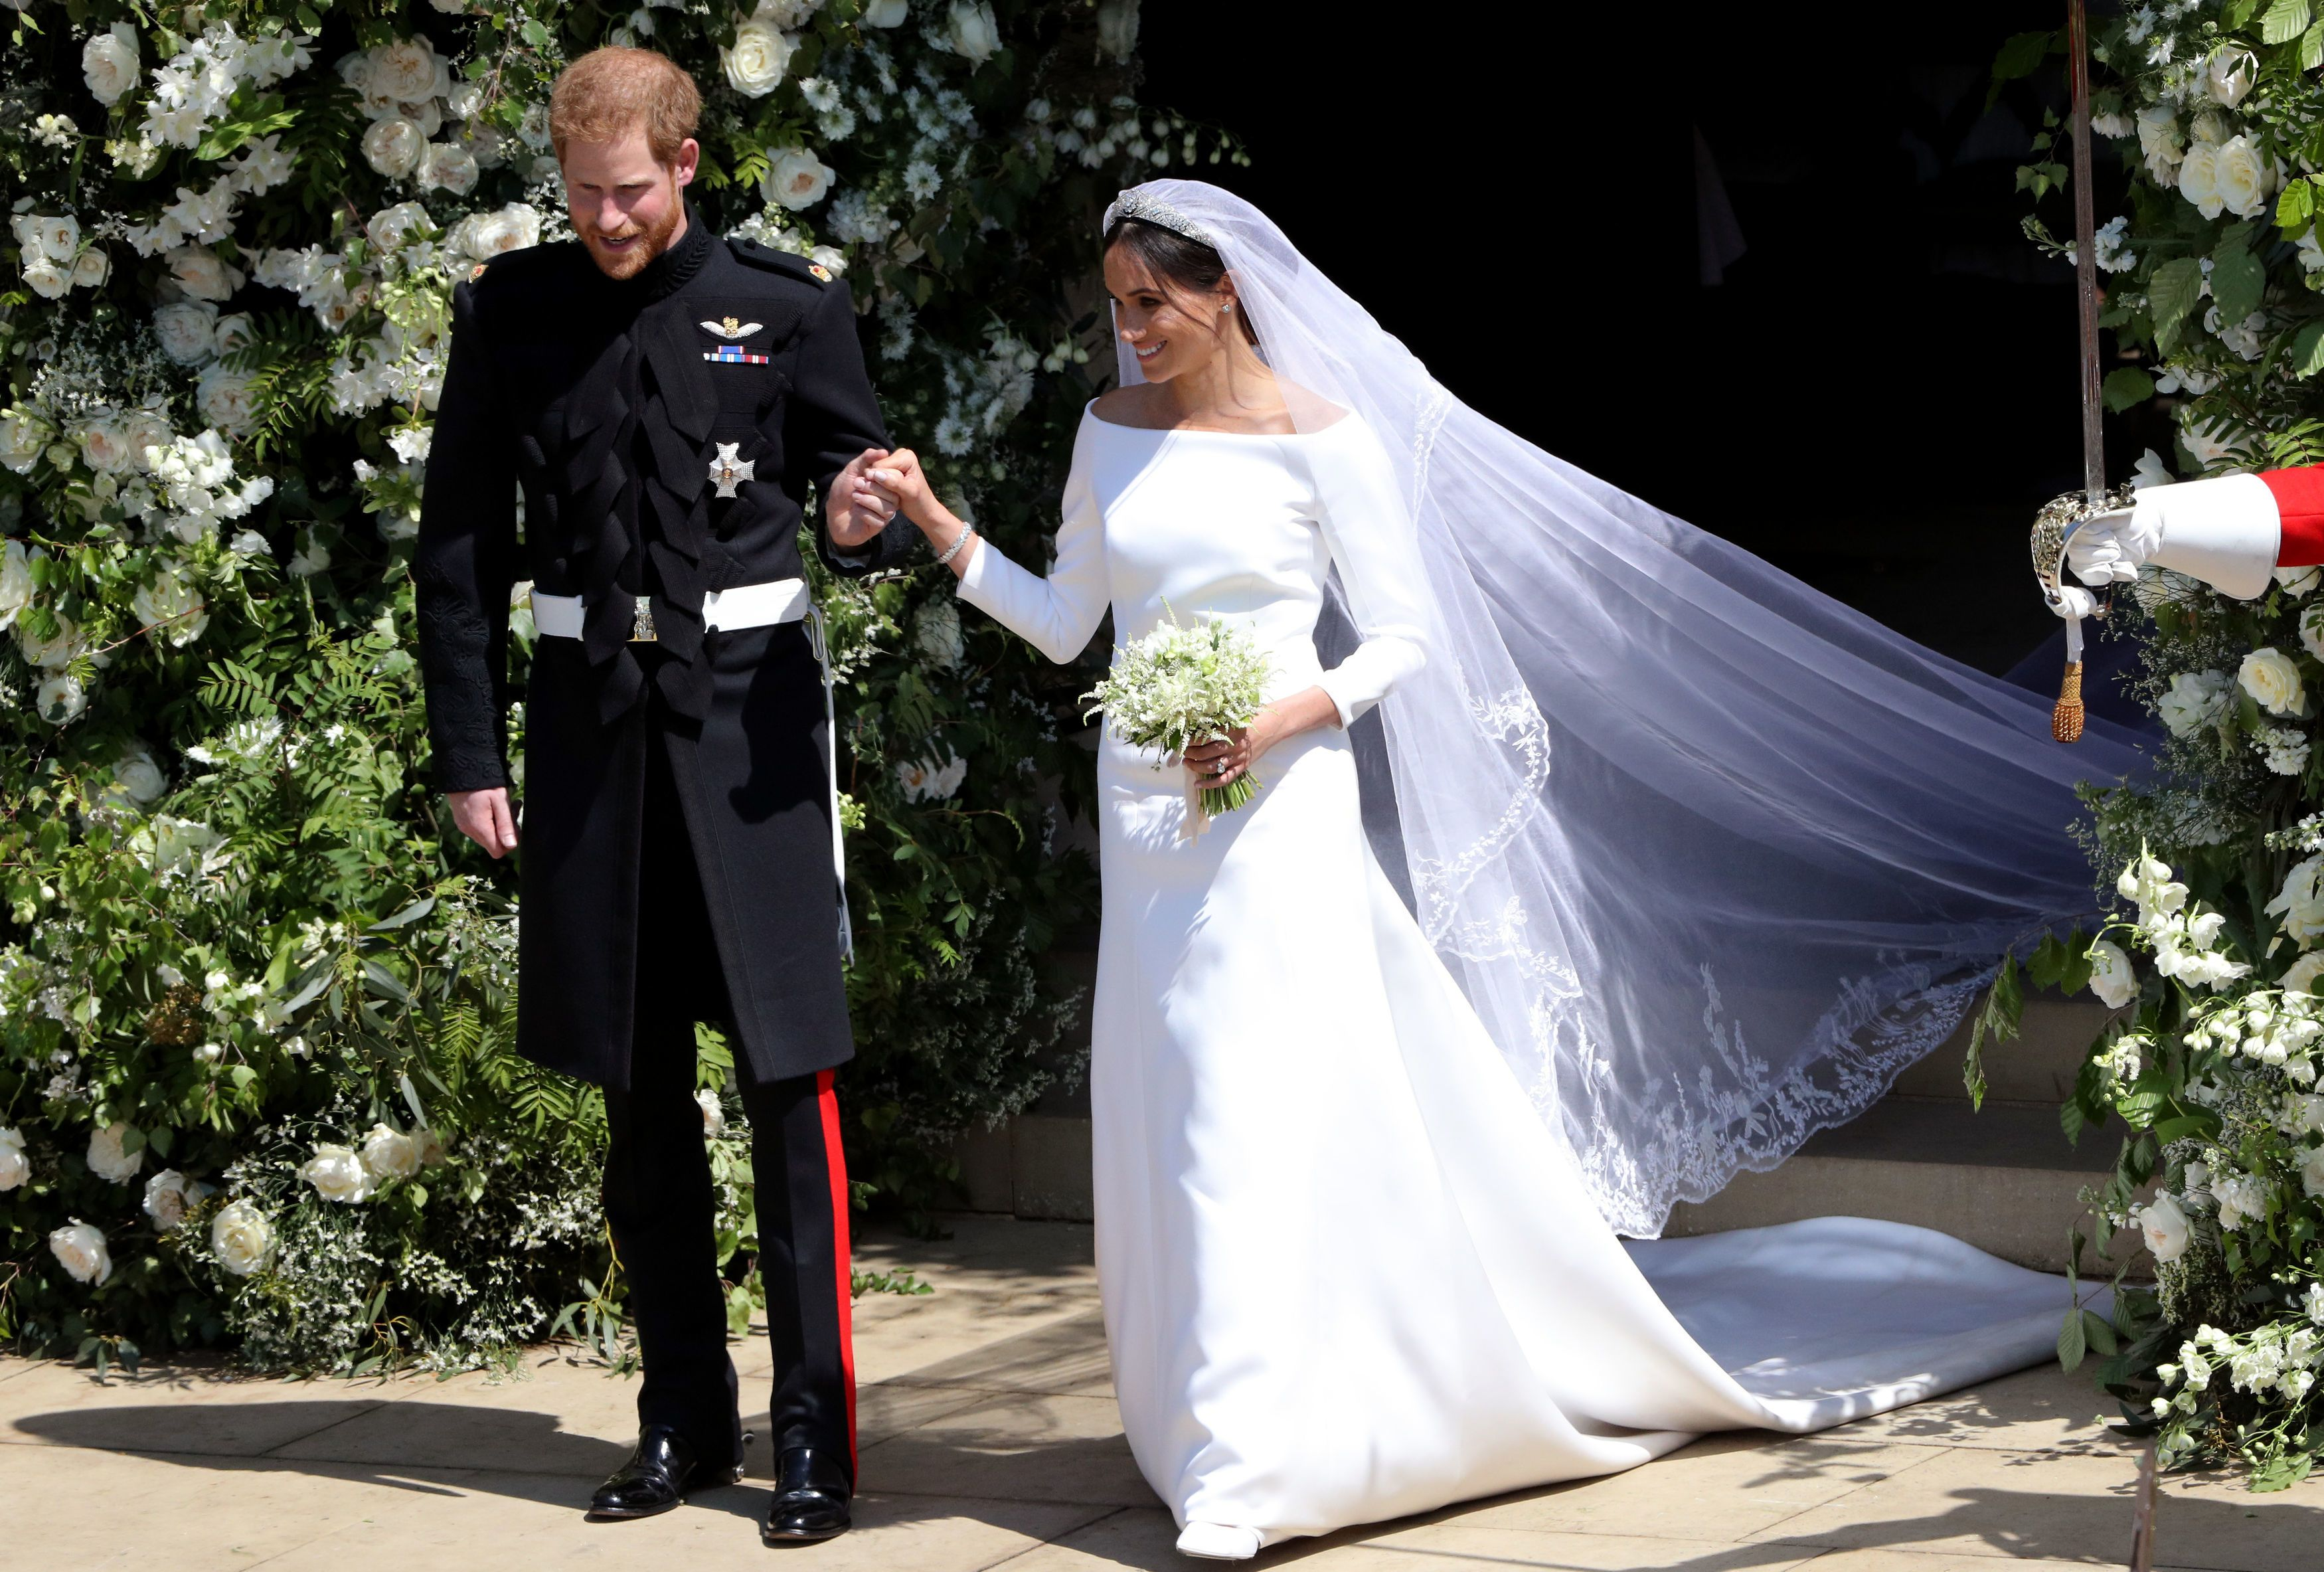 202f3f442a9dc Meghan Markle Wedding Dress Guide to Designer, Bridal Style and Gown ...